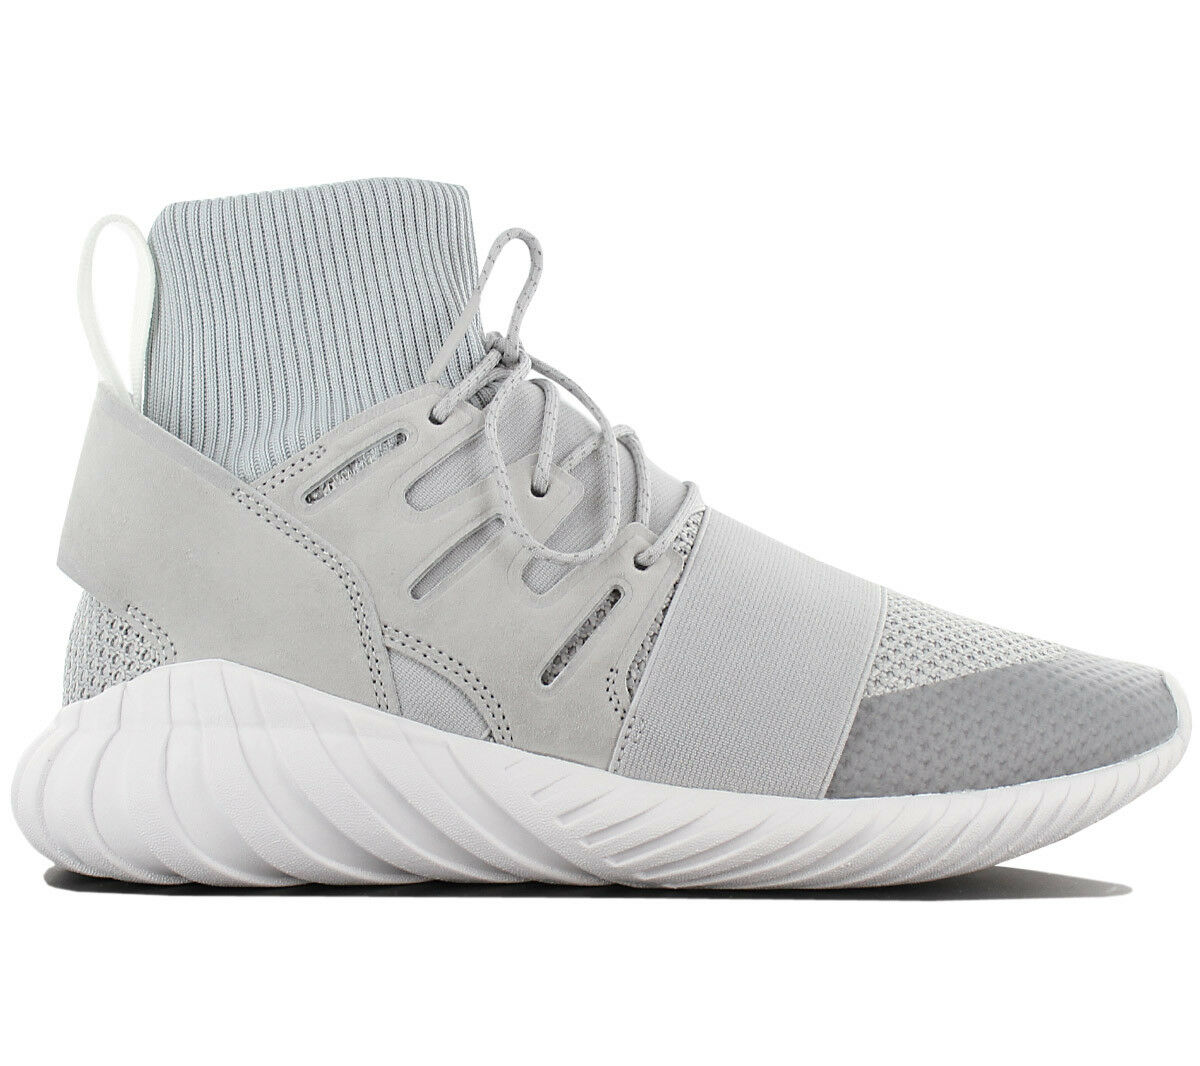 best service b6deb e1df1 Adidas Originals Originals Originals Tubular Doom mid shoes Men s Sneakers  By8701 Trainers Grey c5e975